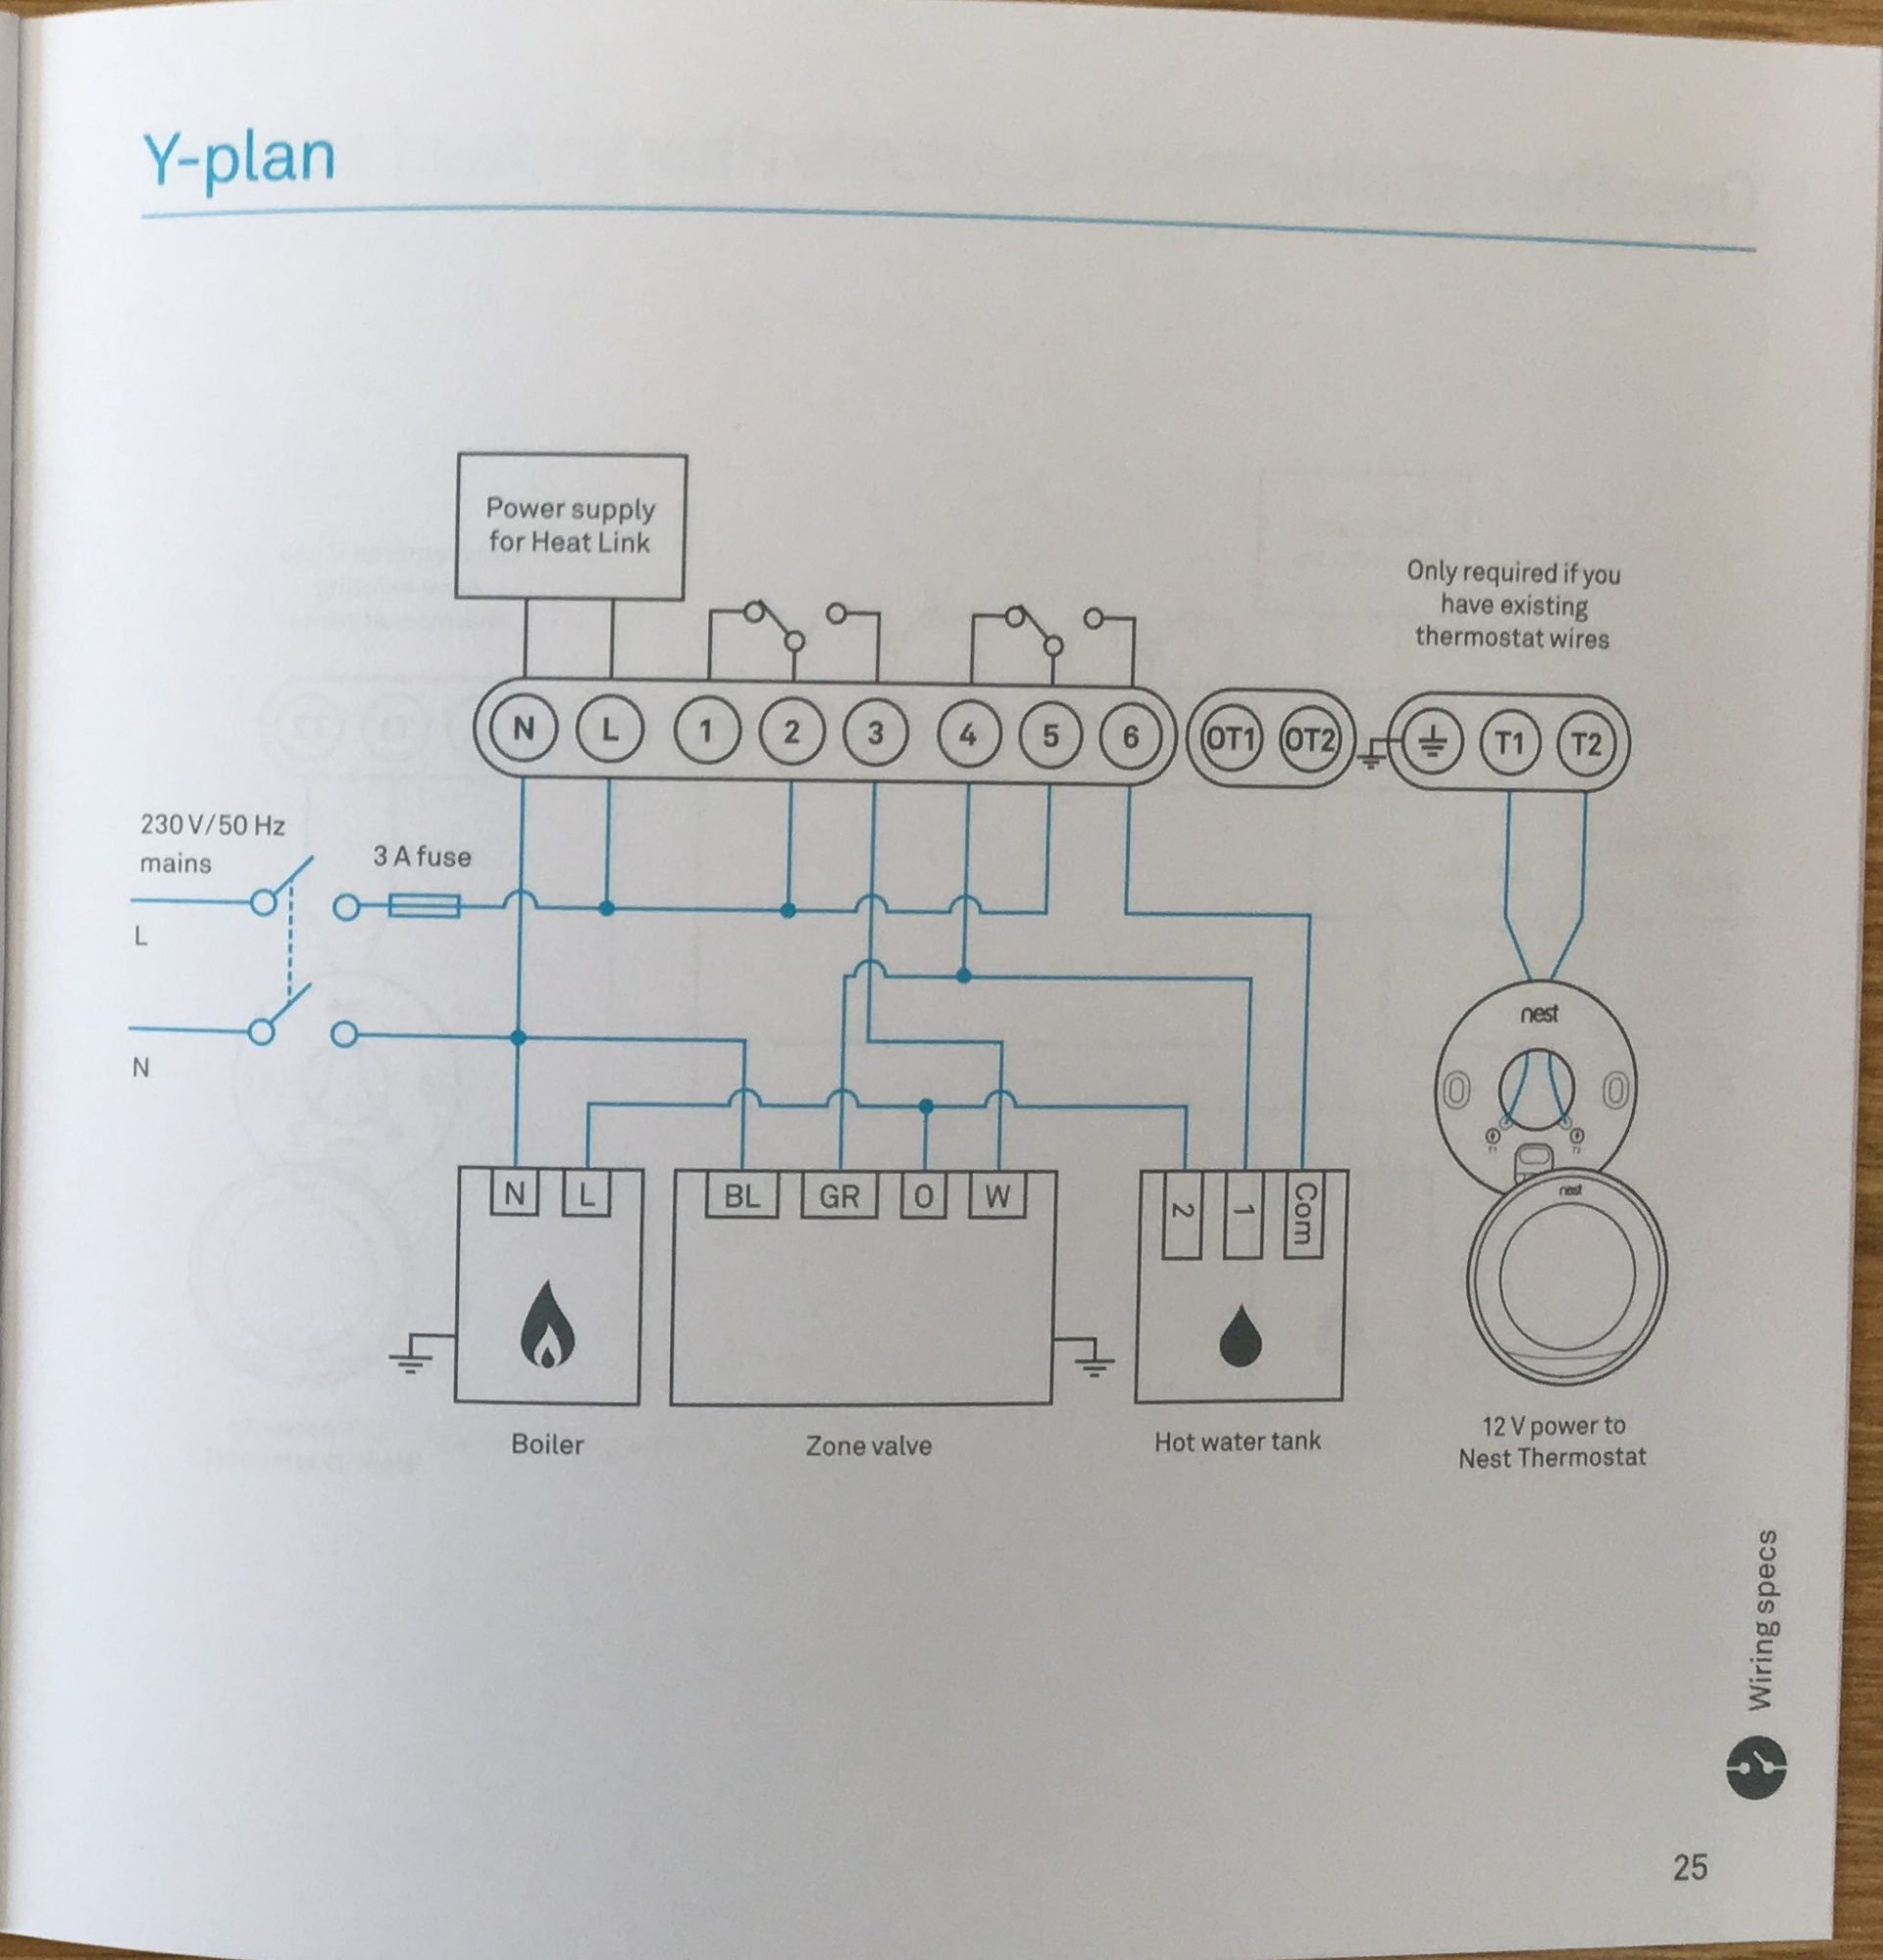 How To Install The Nest Learning Thermostat (3Rd Gen) In A Y-Plan - Nest 3 Wiring Diagram 4 Wires